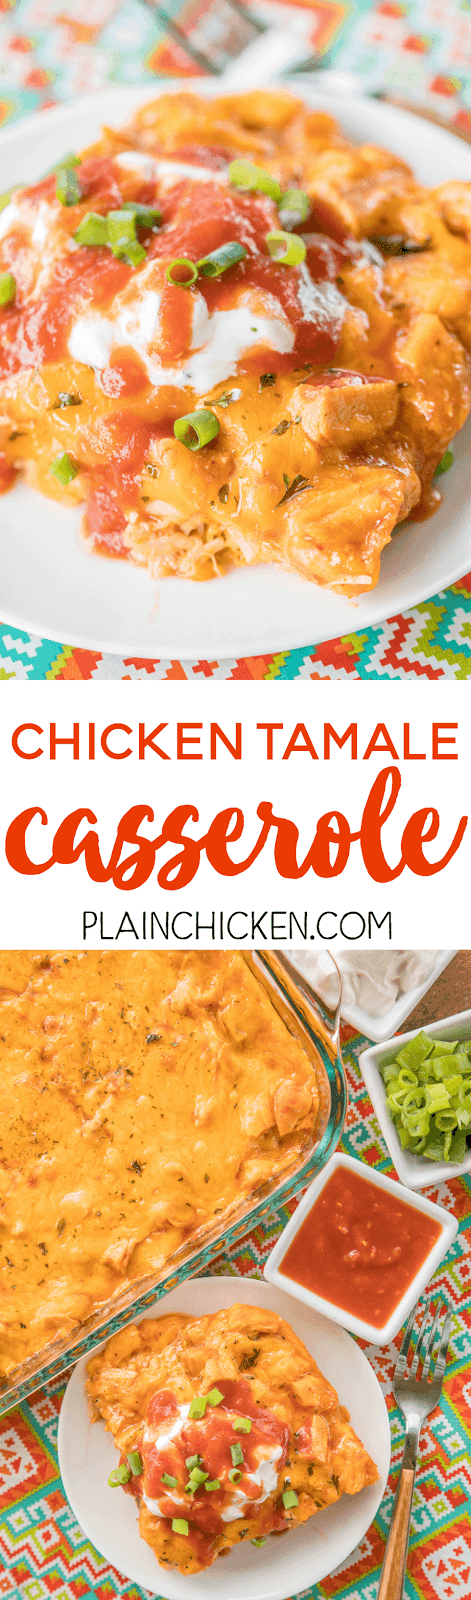 Chicken Tamale Casserole - a sweet cornbread crust topped with enchilada sauce and chicken. This is a crowd pleaser! SO easy and ready in minutes! Everyone LOVES this recipe - even picky eaters. Top with your favorite taco toppings! Jiffy mix, creamed corn, eggs, milk, cheddar cheese, chicken, enchilada sauce. SO good! Great weeknight meal that will please the whole family!